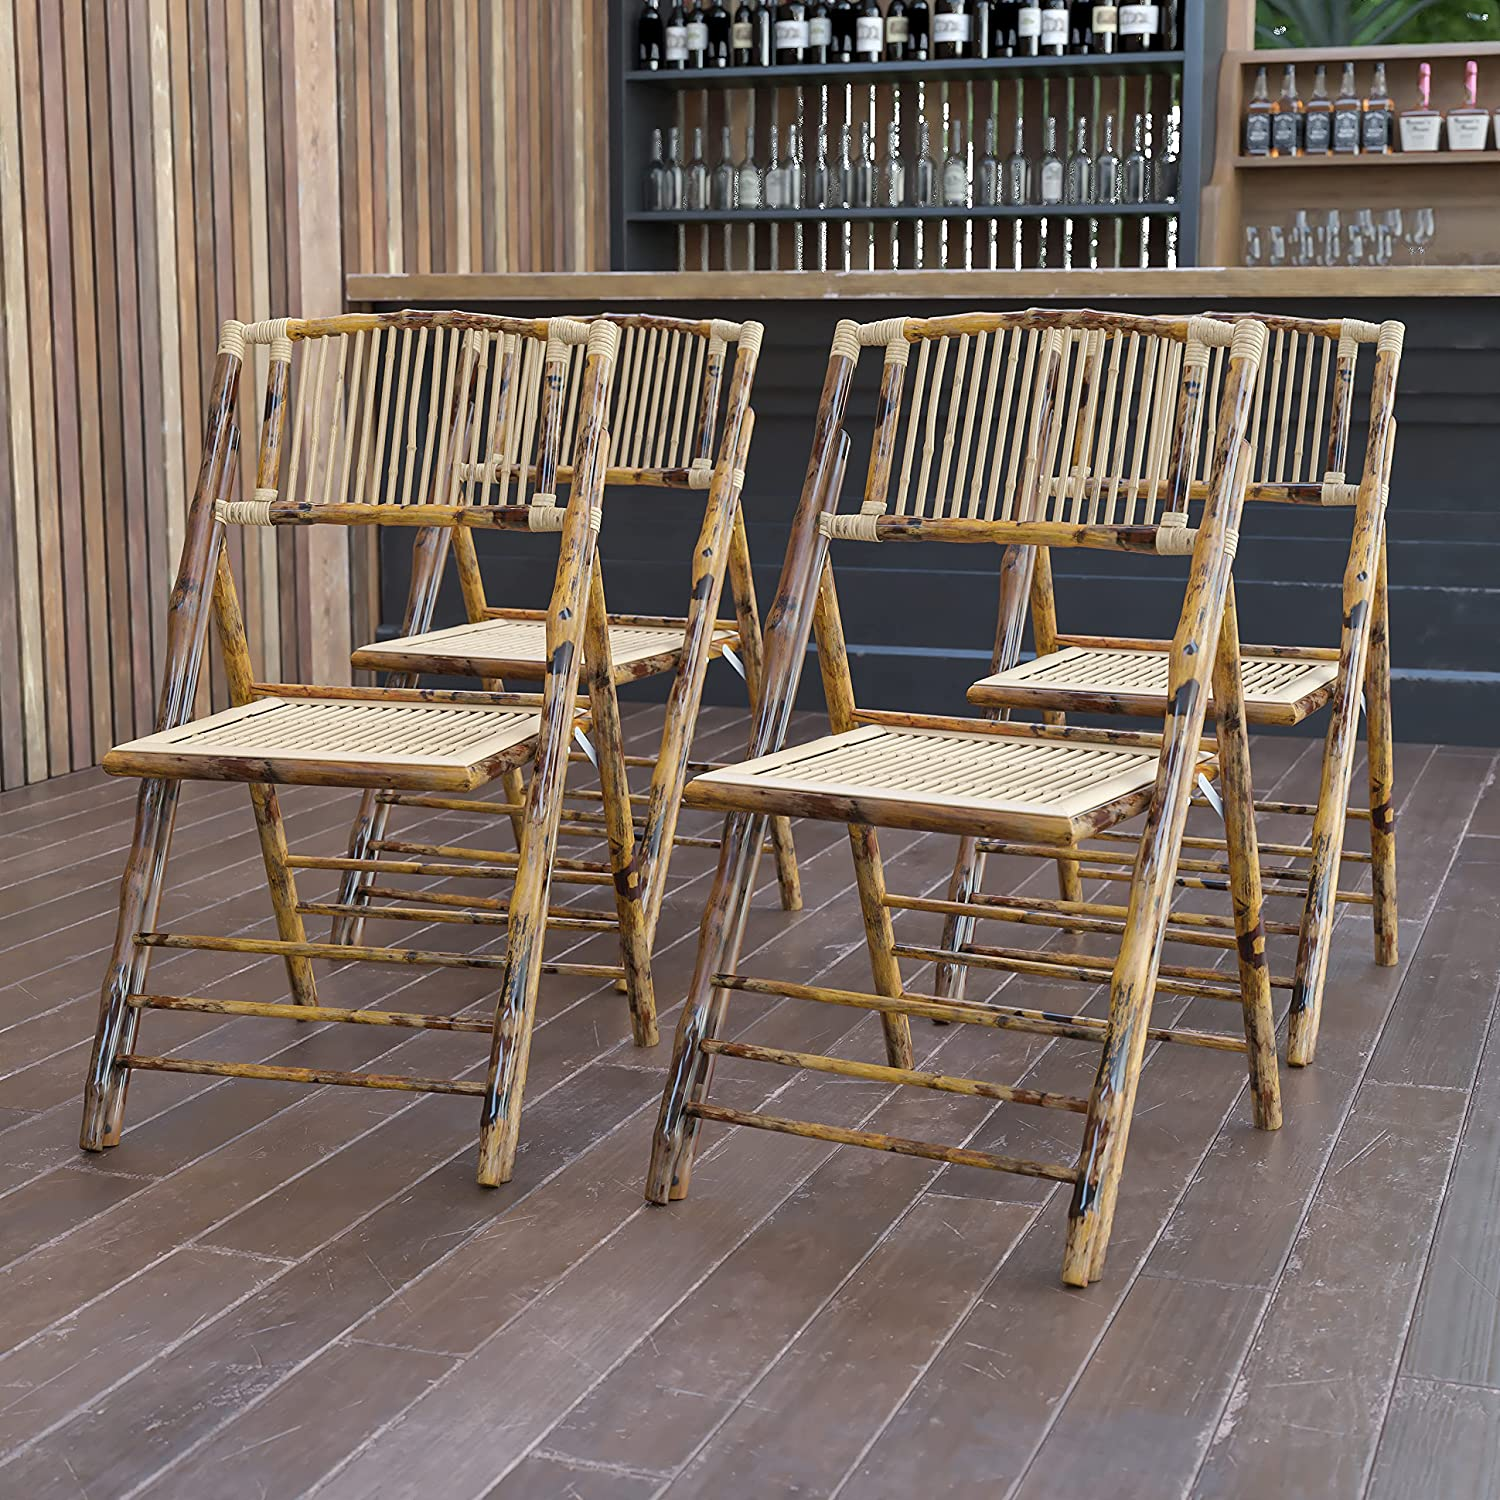 Flash Furniture Super special price 4 Pack American Champion Our shop OFFers the best service Chair Bamboo Folding